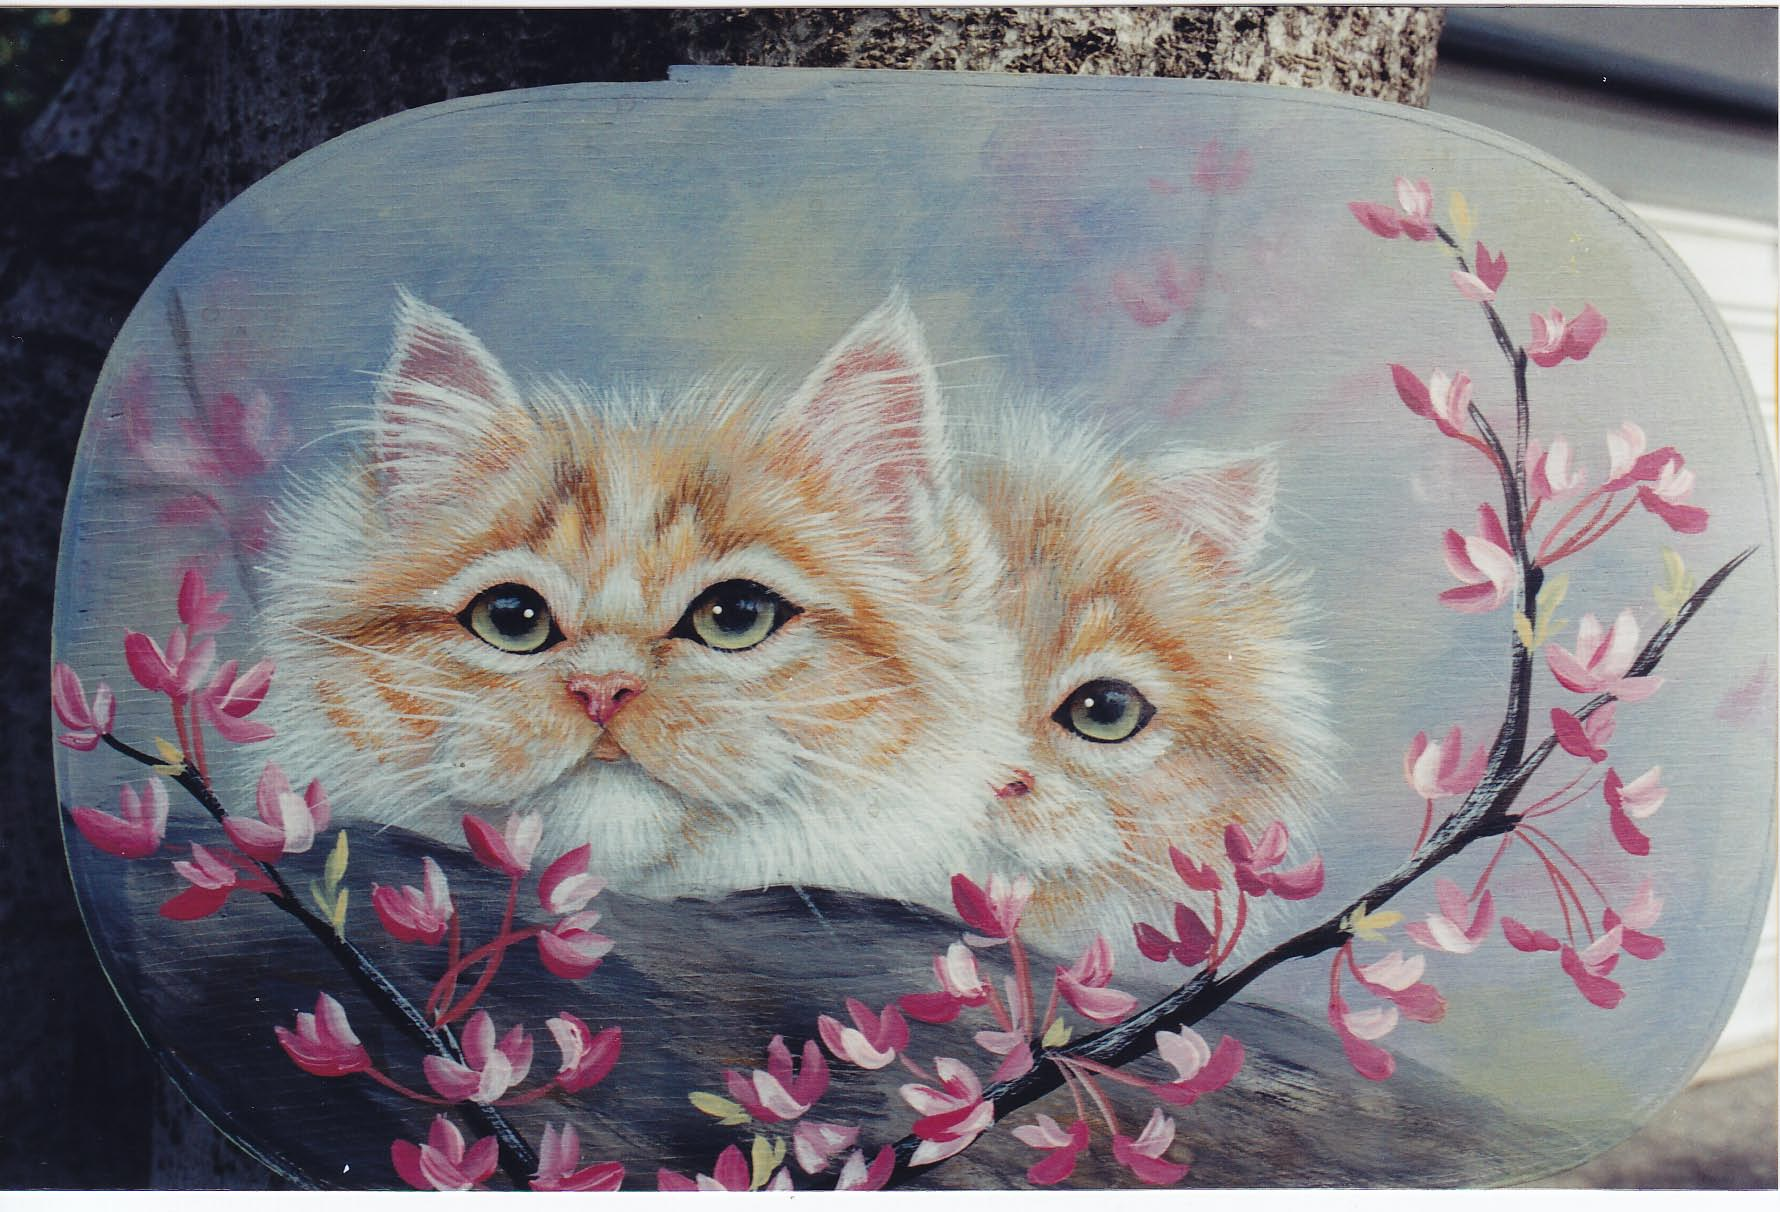 Kittens and REDBUD - Karen Hubbard